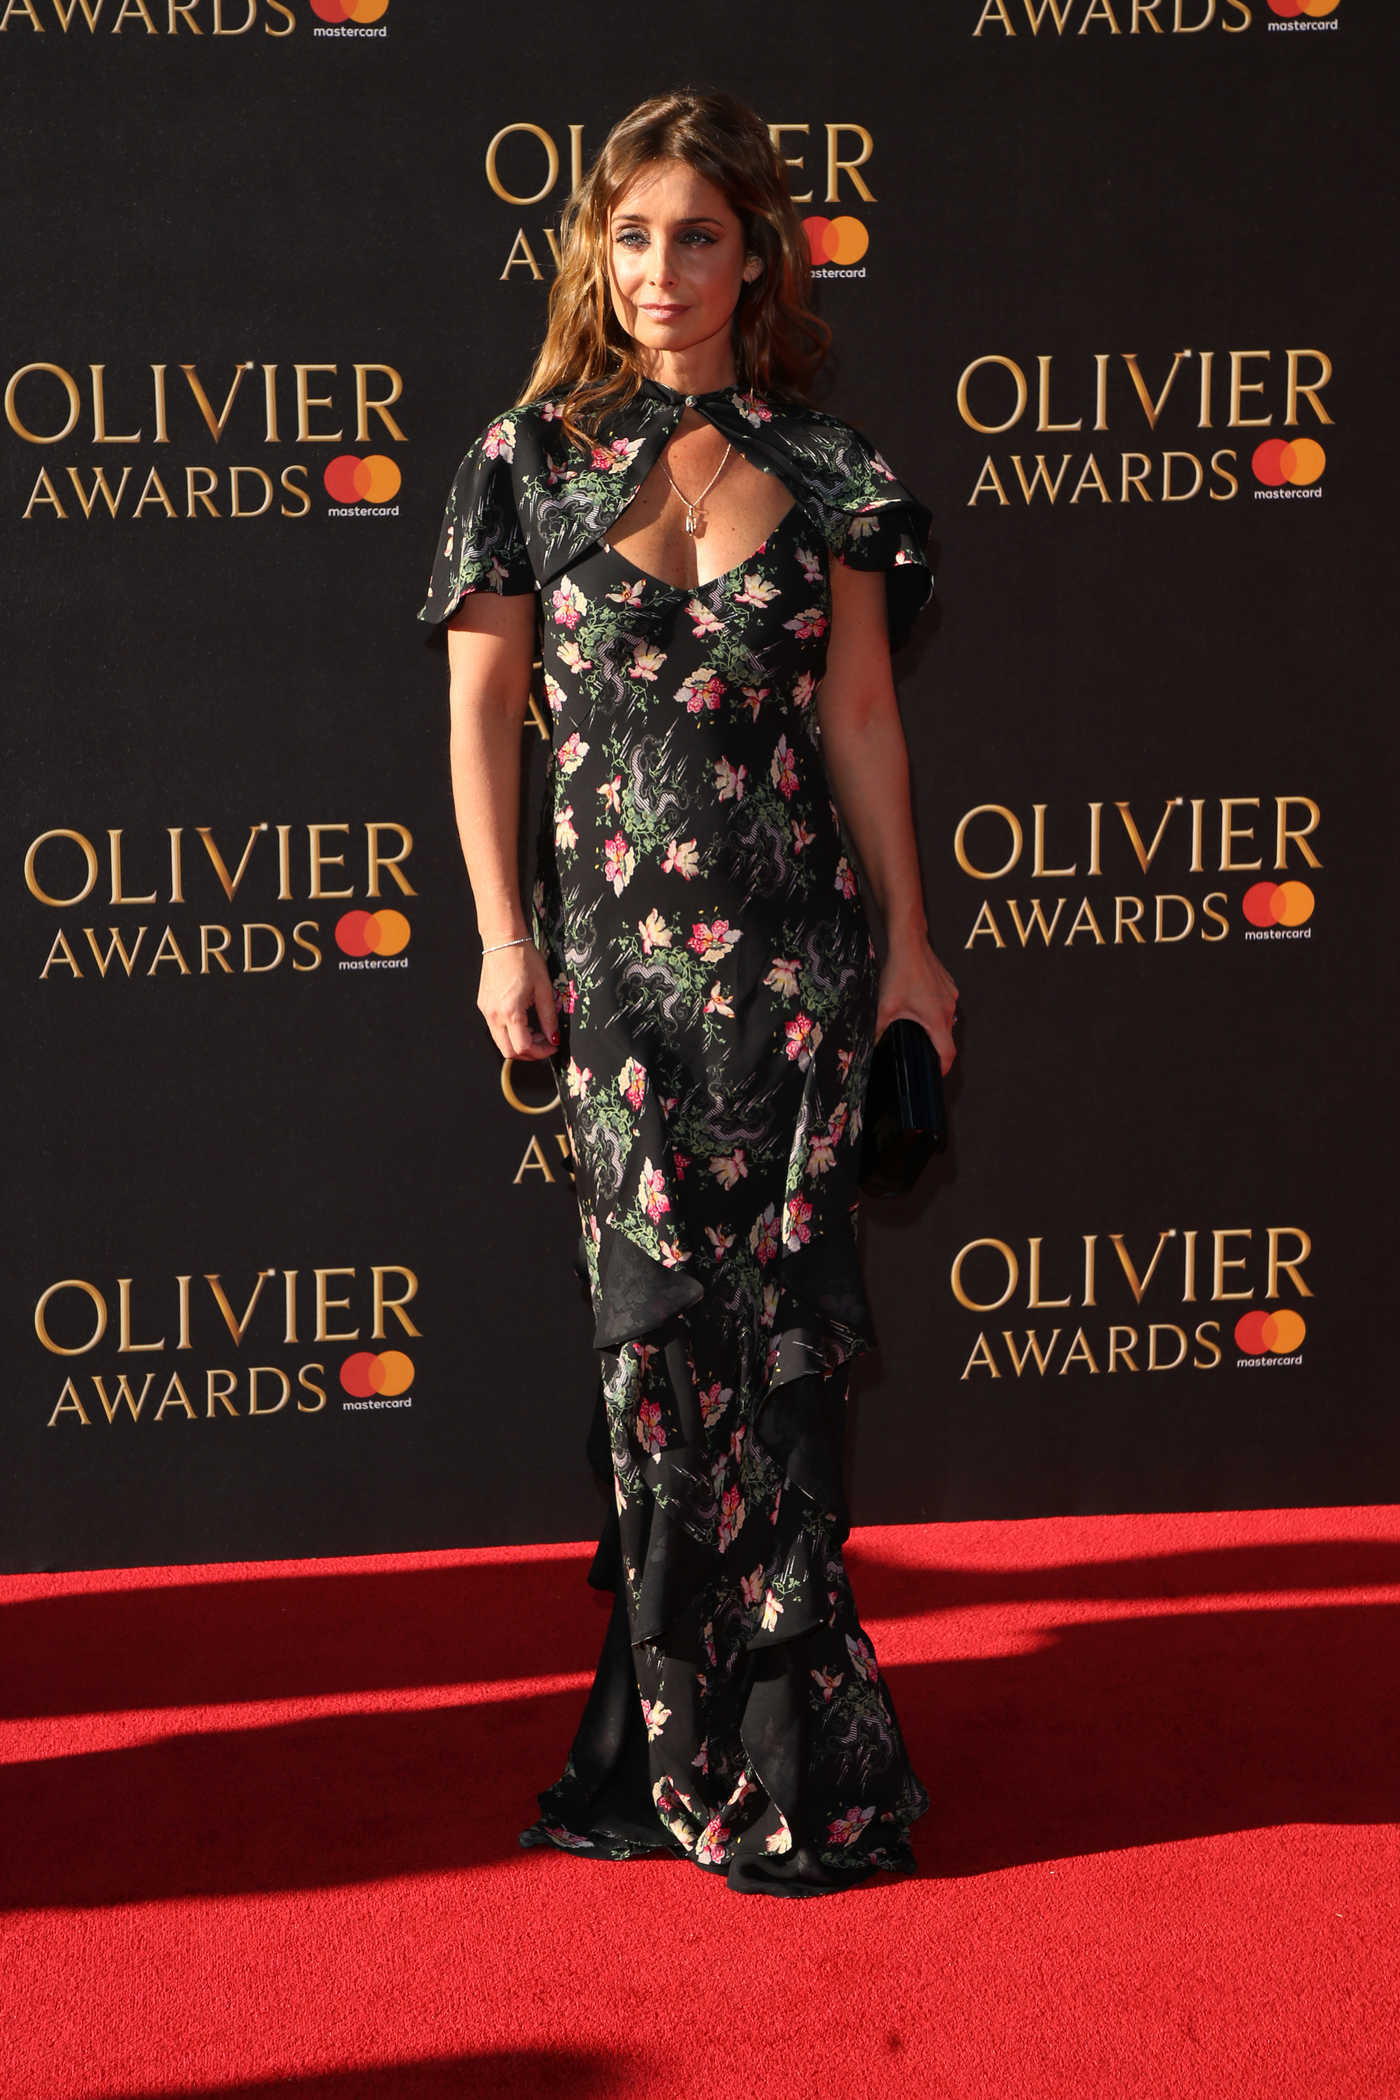 Louise Redknapp at the Olivier Awards in London 04/09/2017